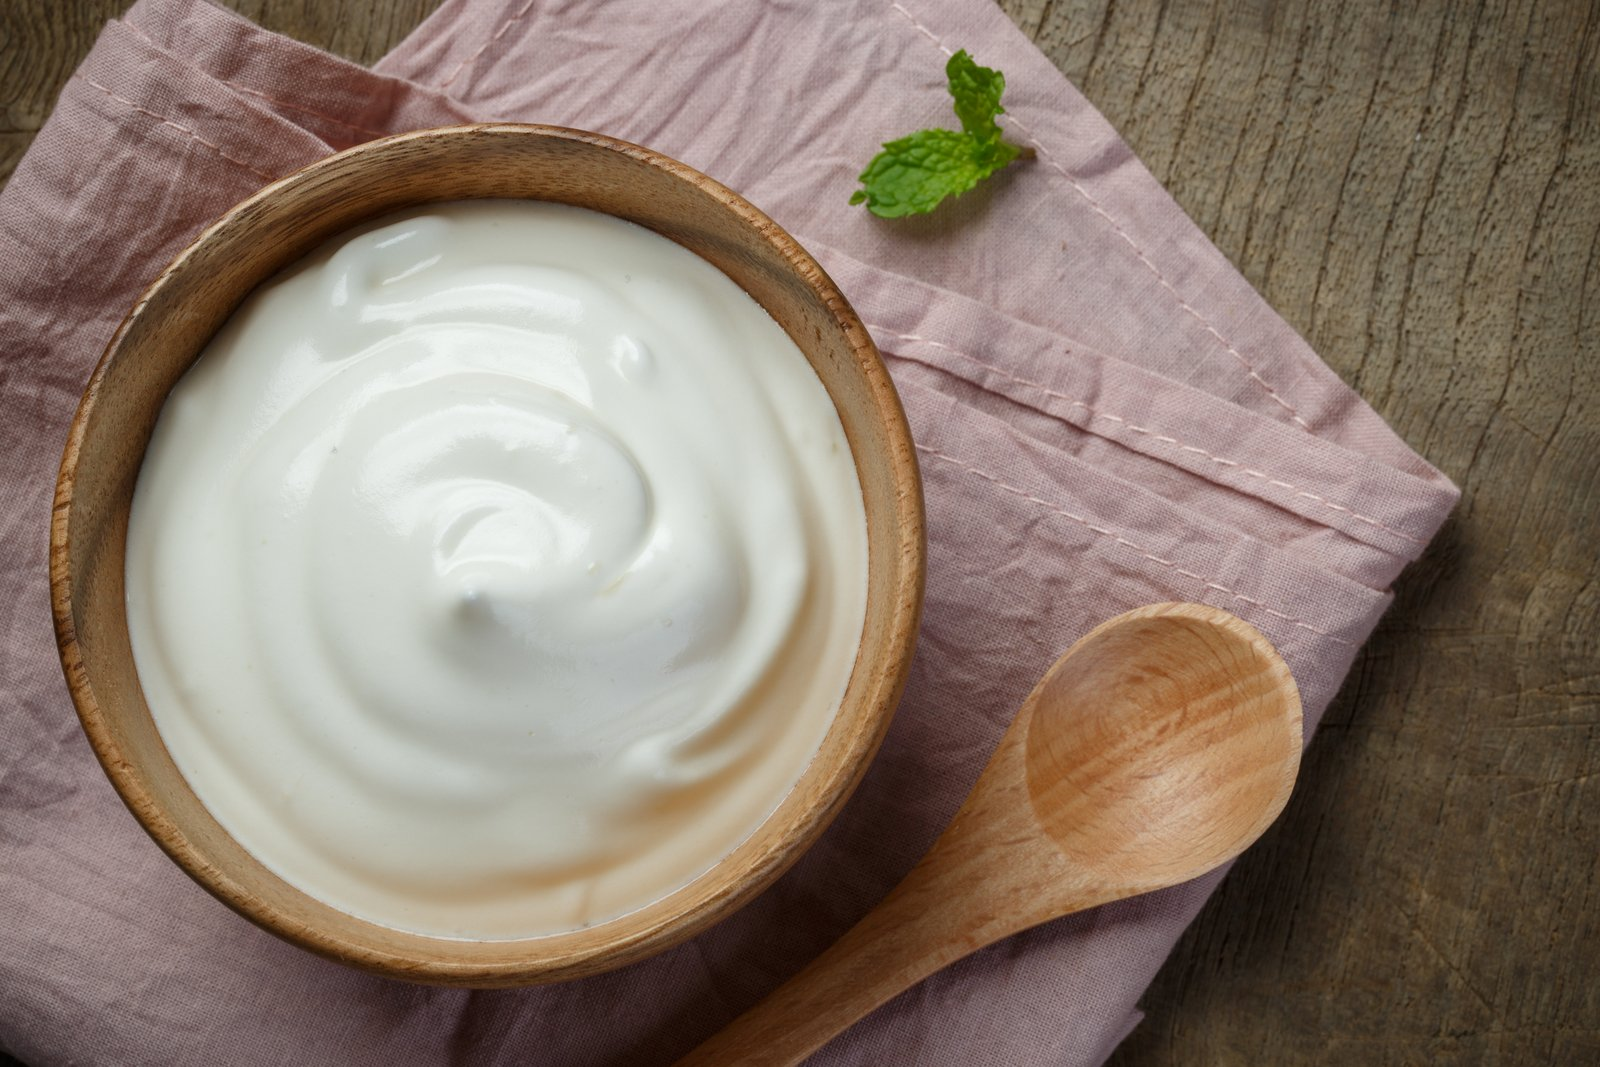 How_To_Make_Fresh_Homemade_Yogurt_Curd